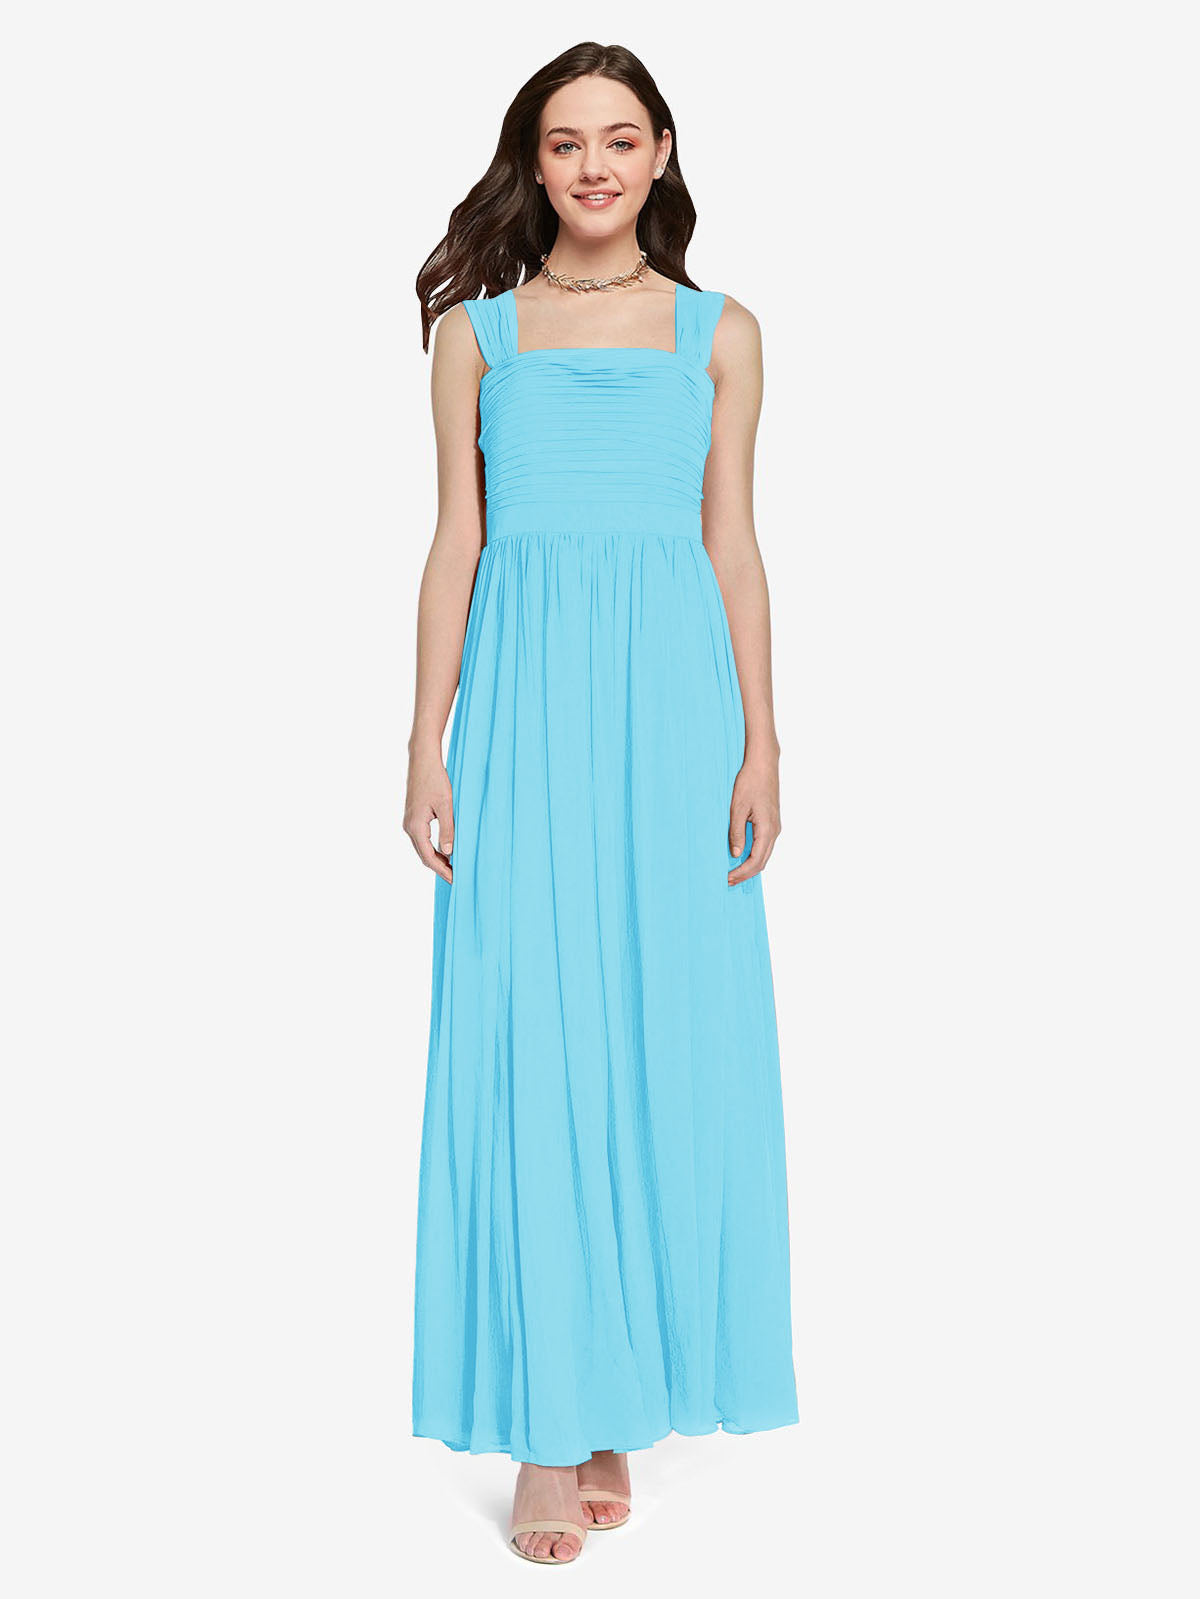 Long A-Line Square Sleeveless Sky Blue Chiffon Bridesmaid Dress Aldridge